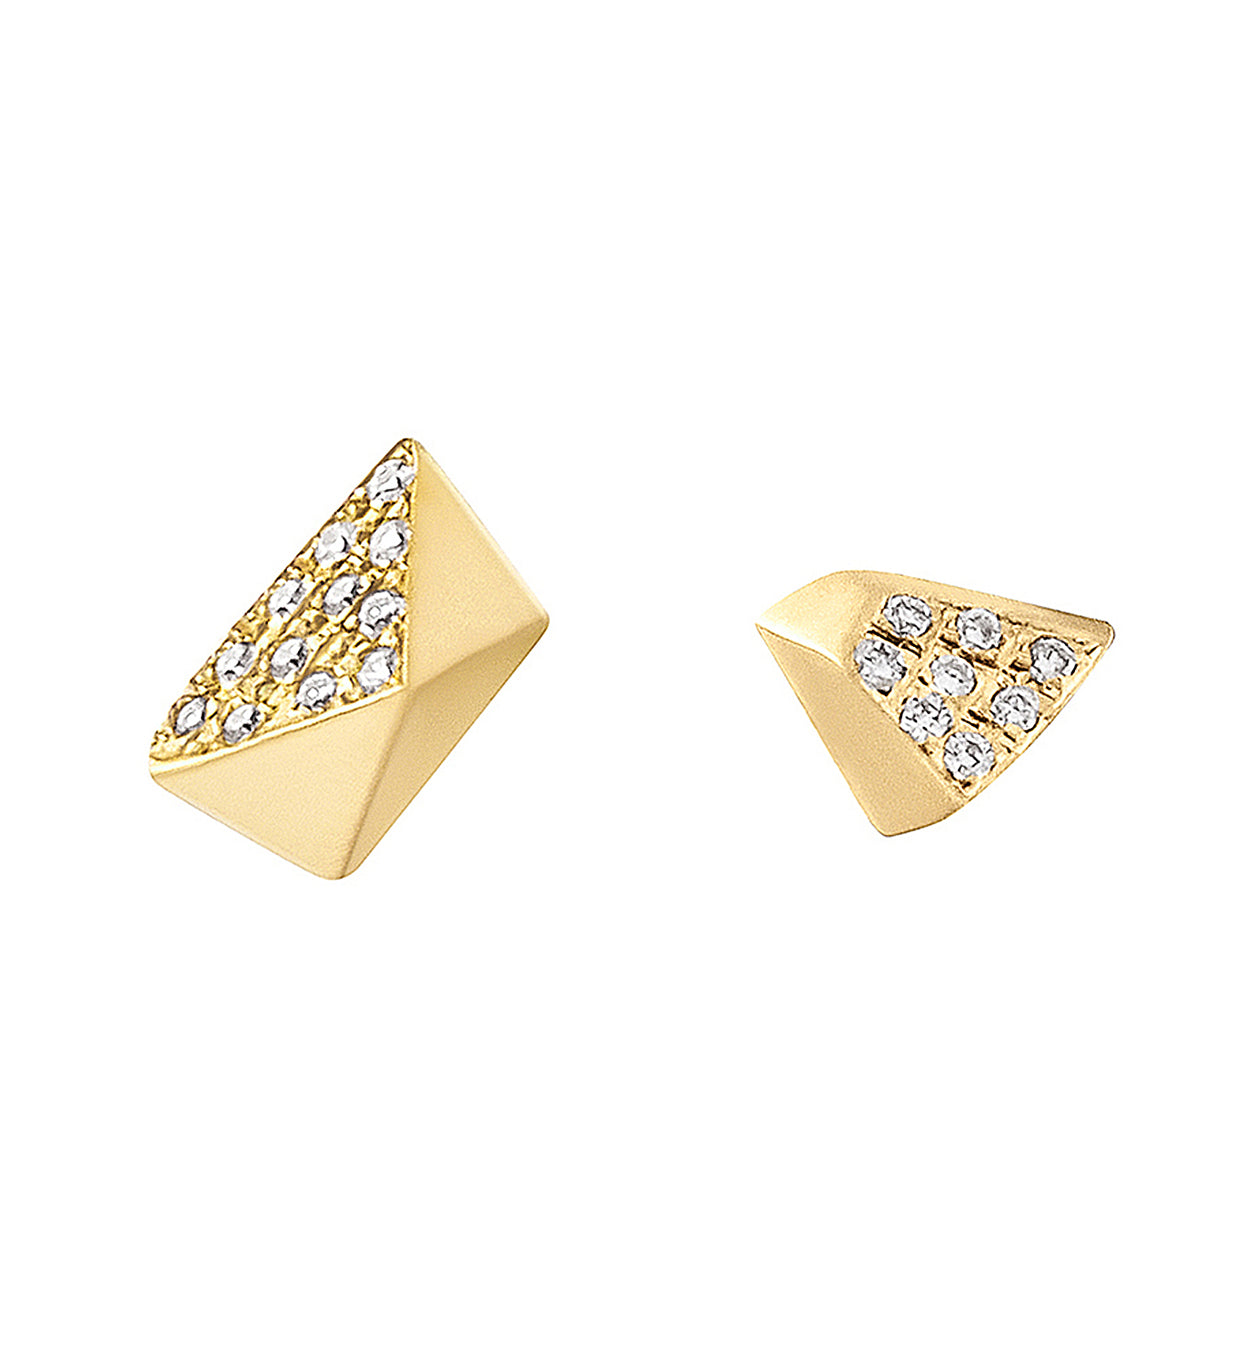 Diamond Mismatched Pyramid & Triangle Studs